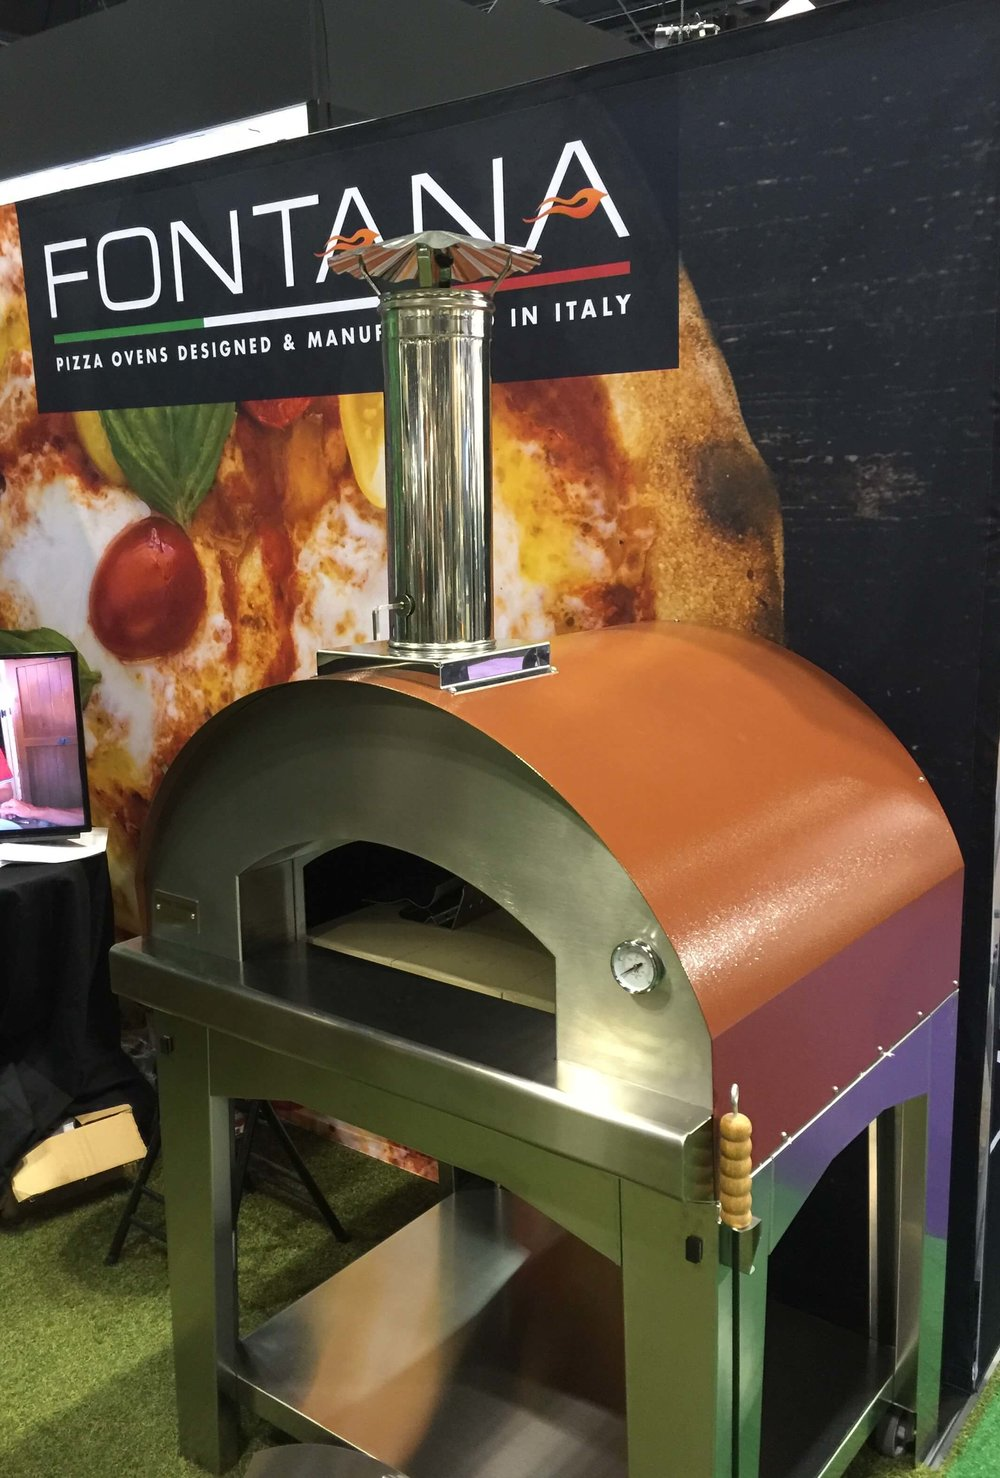 If you don't have room in your kitchen for the indoor model, there are always the outdoor versions! You could have a little piece of Italy in your backyard with these from   Fontana.  #pizzaoven #outdoorpizzaoven